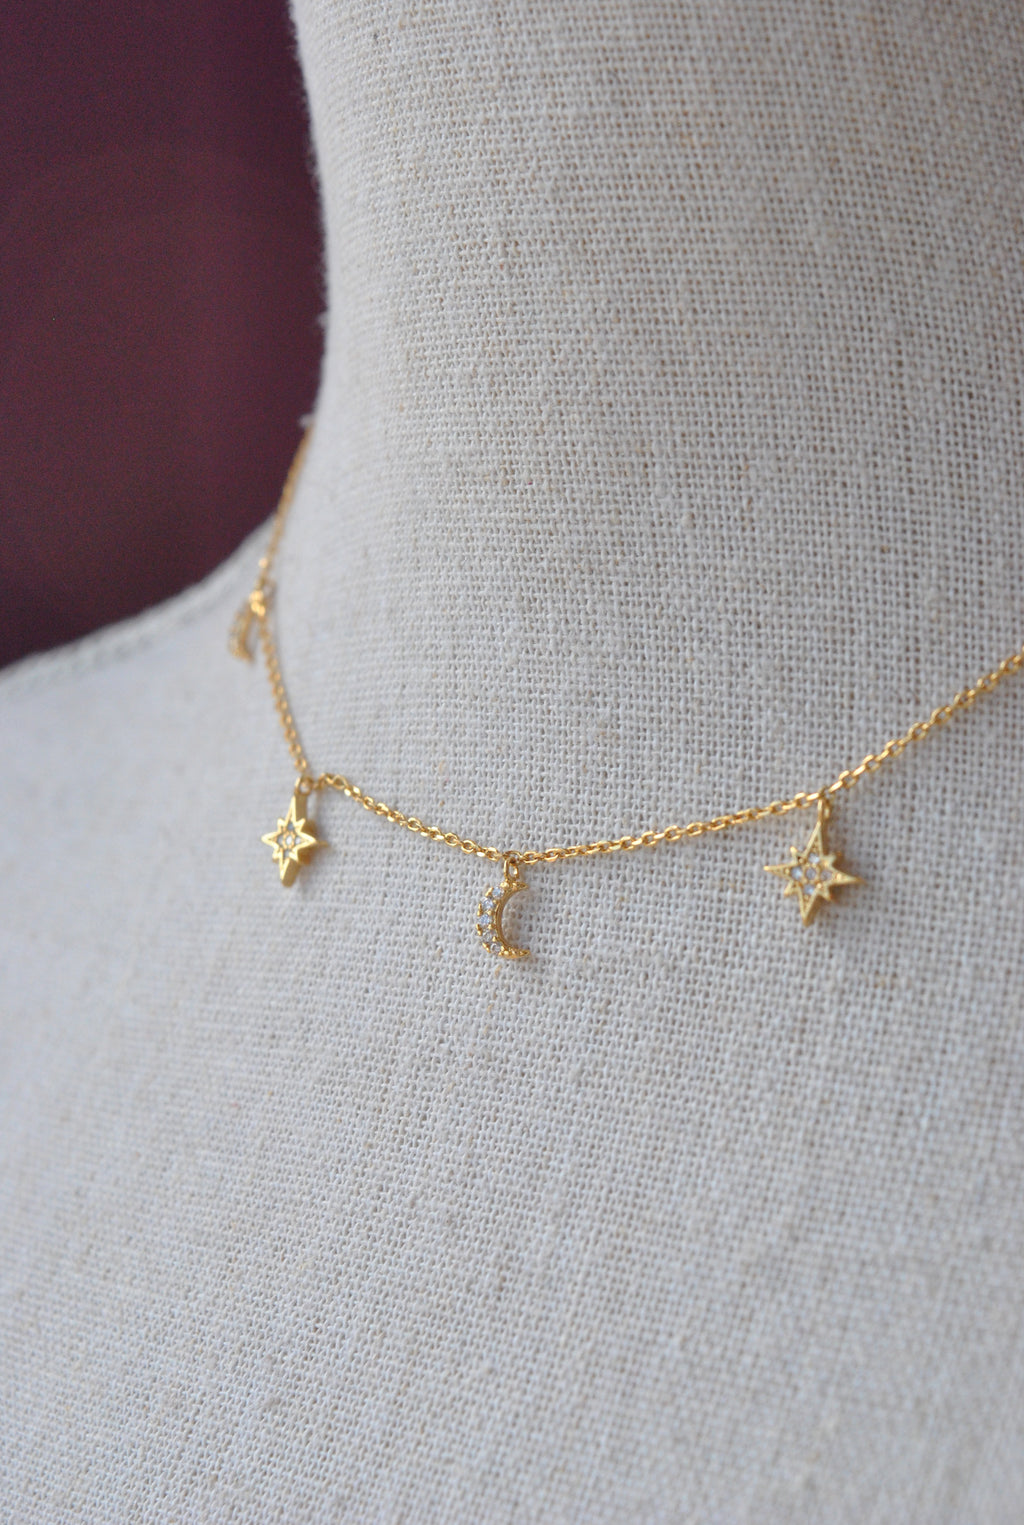 GOLD CHOKER STYLE NECKLACE WITH STAR CHARMS